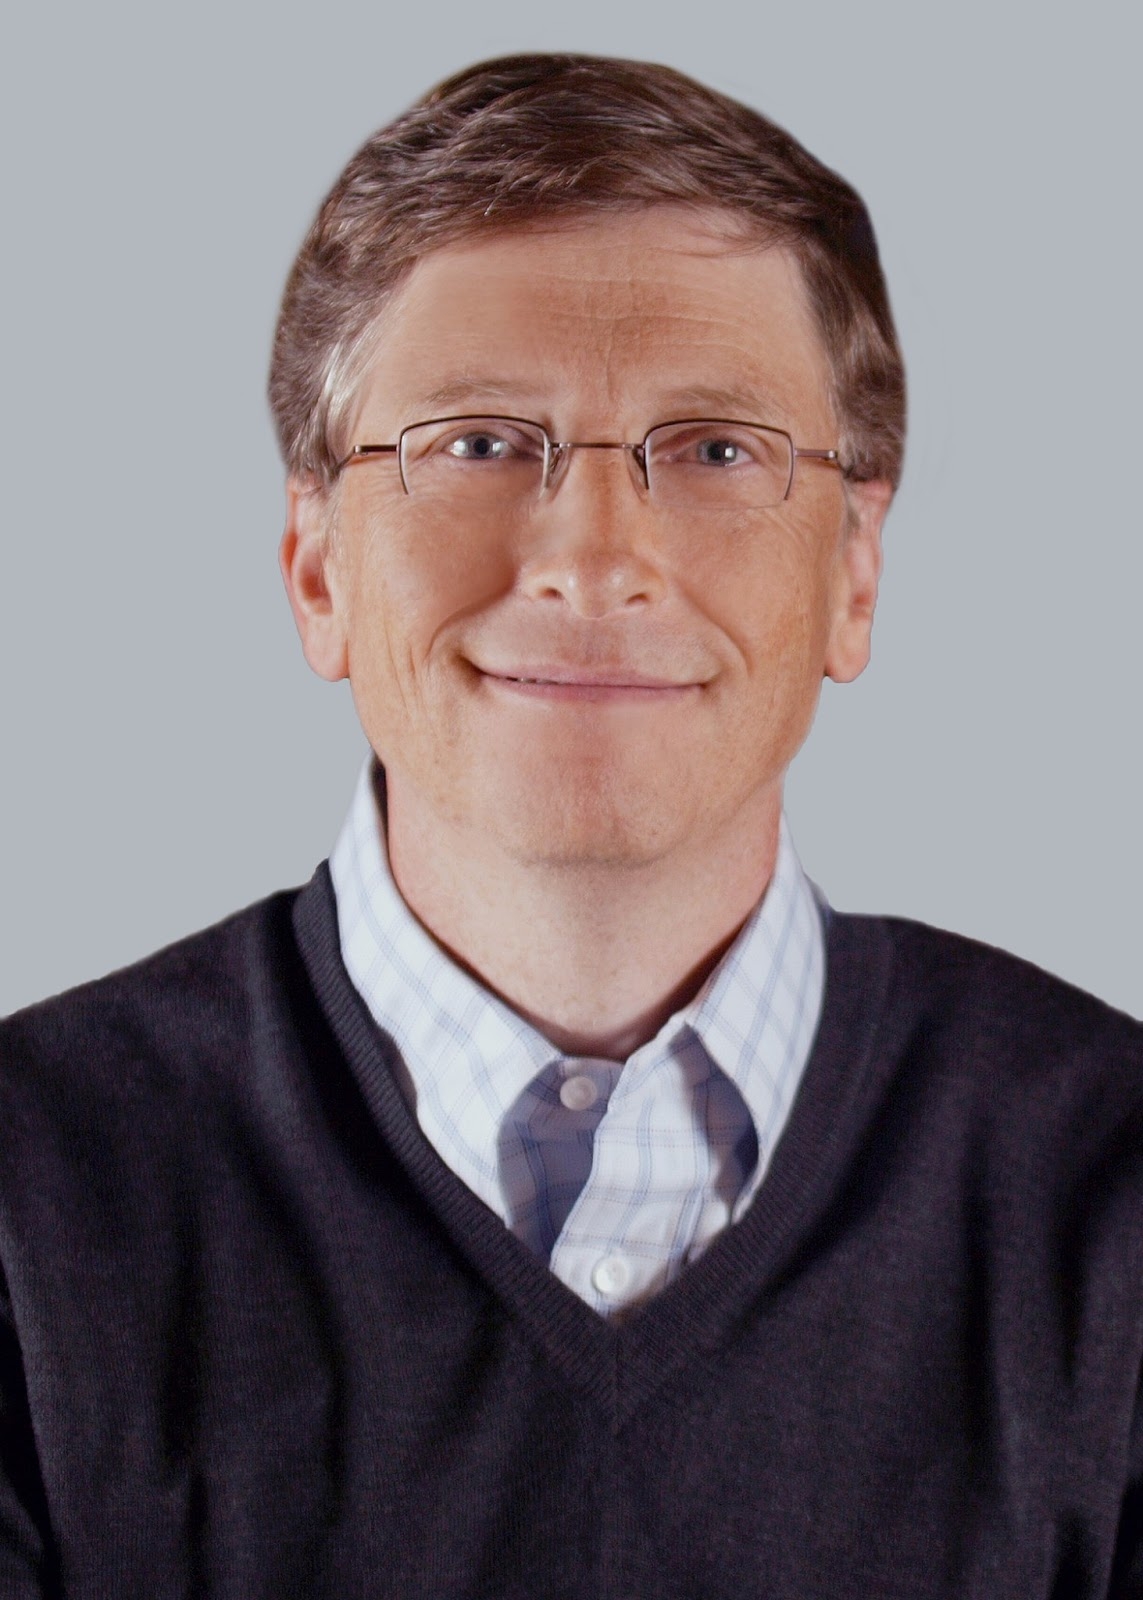 bill gates net worth 2012 forbes and hd wallpapers free download